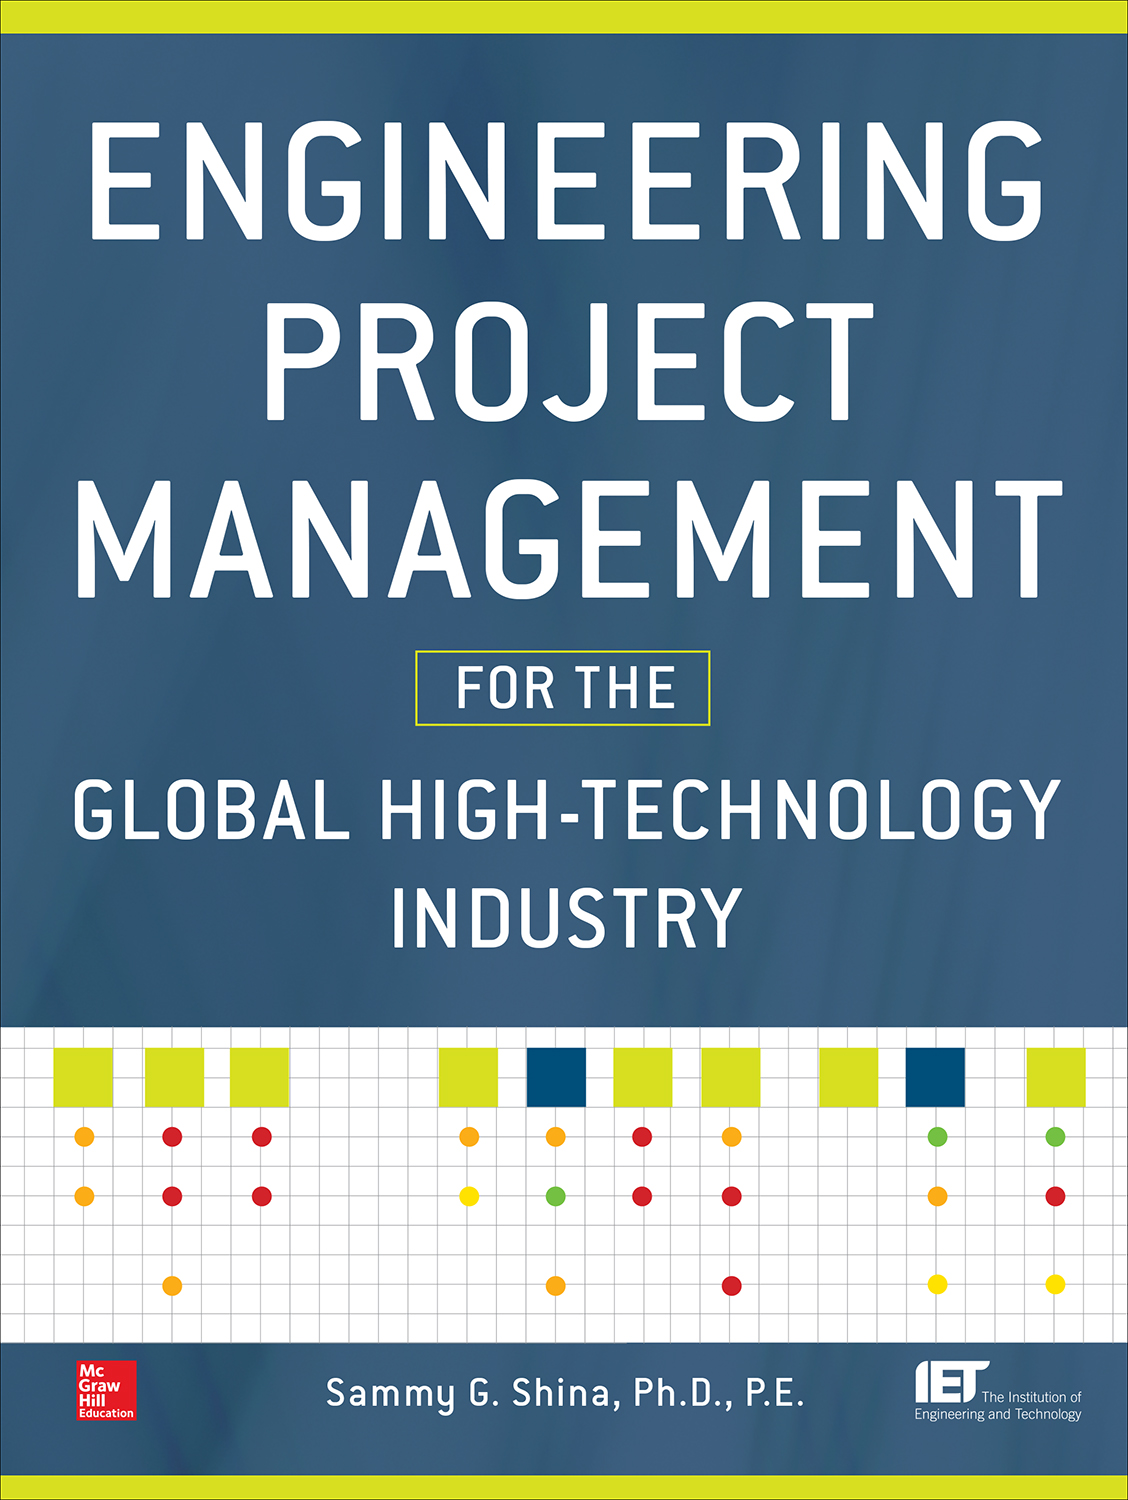 Download Ebook Engineering Project Management for the Global High Technology Industry by Sammy G. Shina Pdf